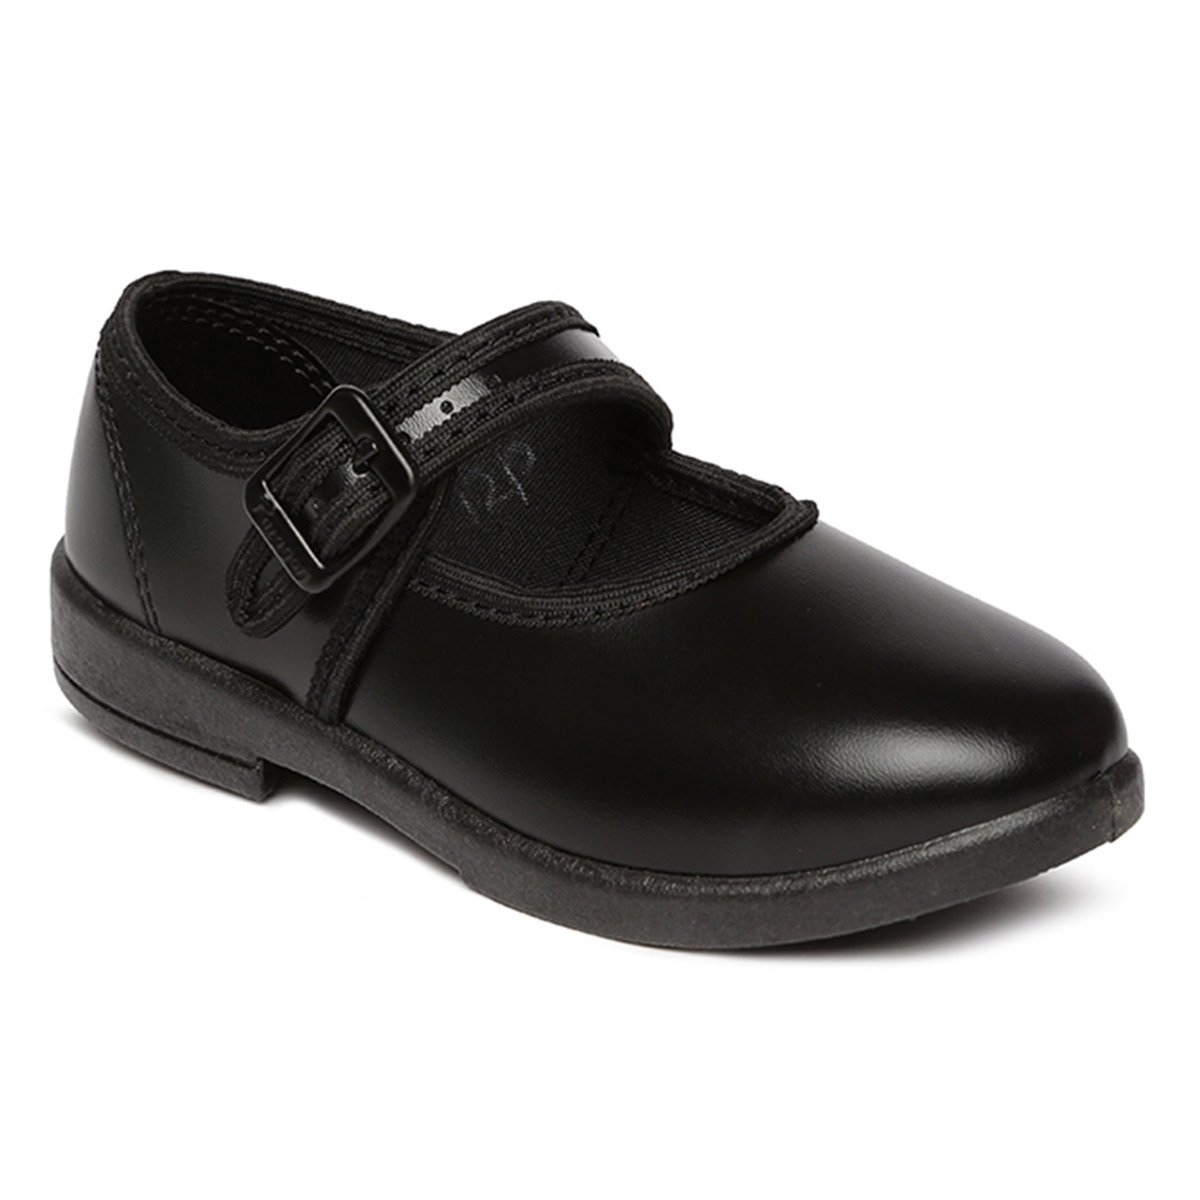 2df4326531748 PARAGON Kid's Black School Shoes